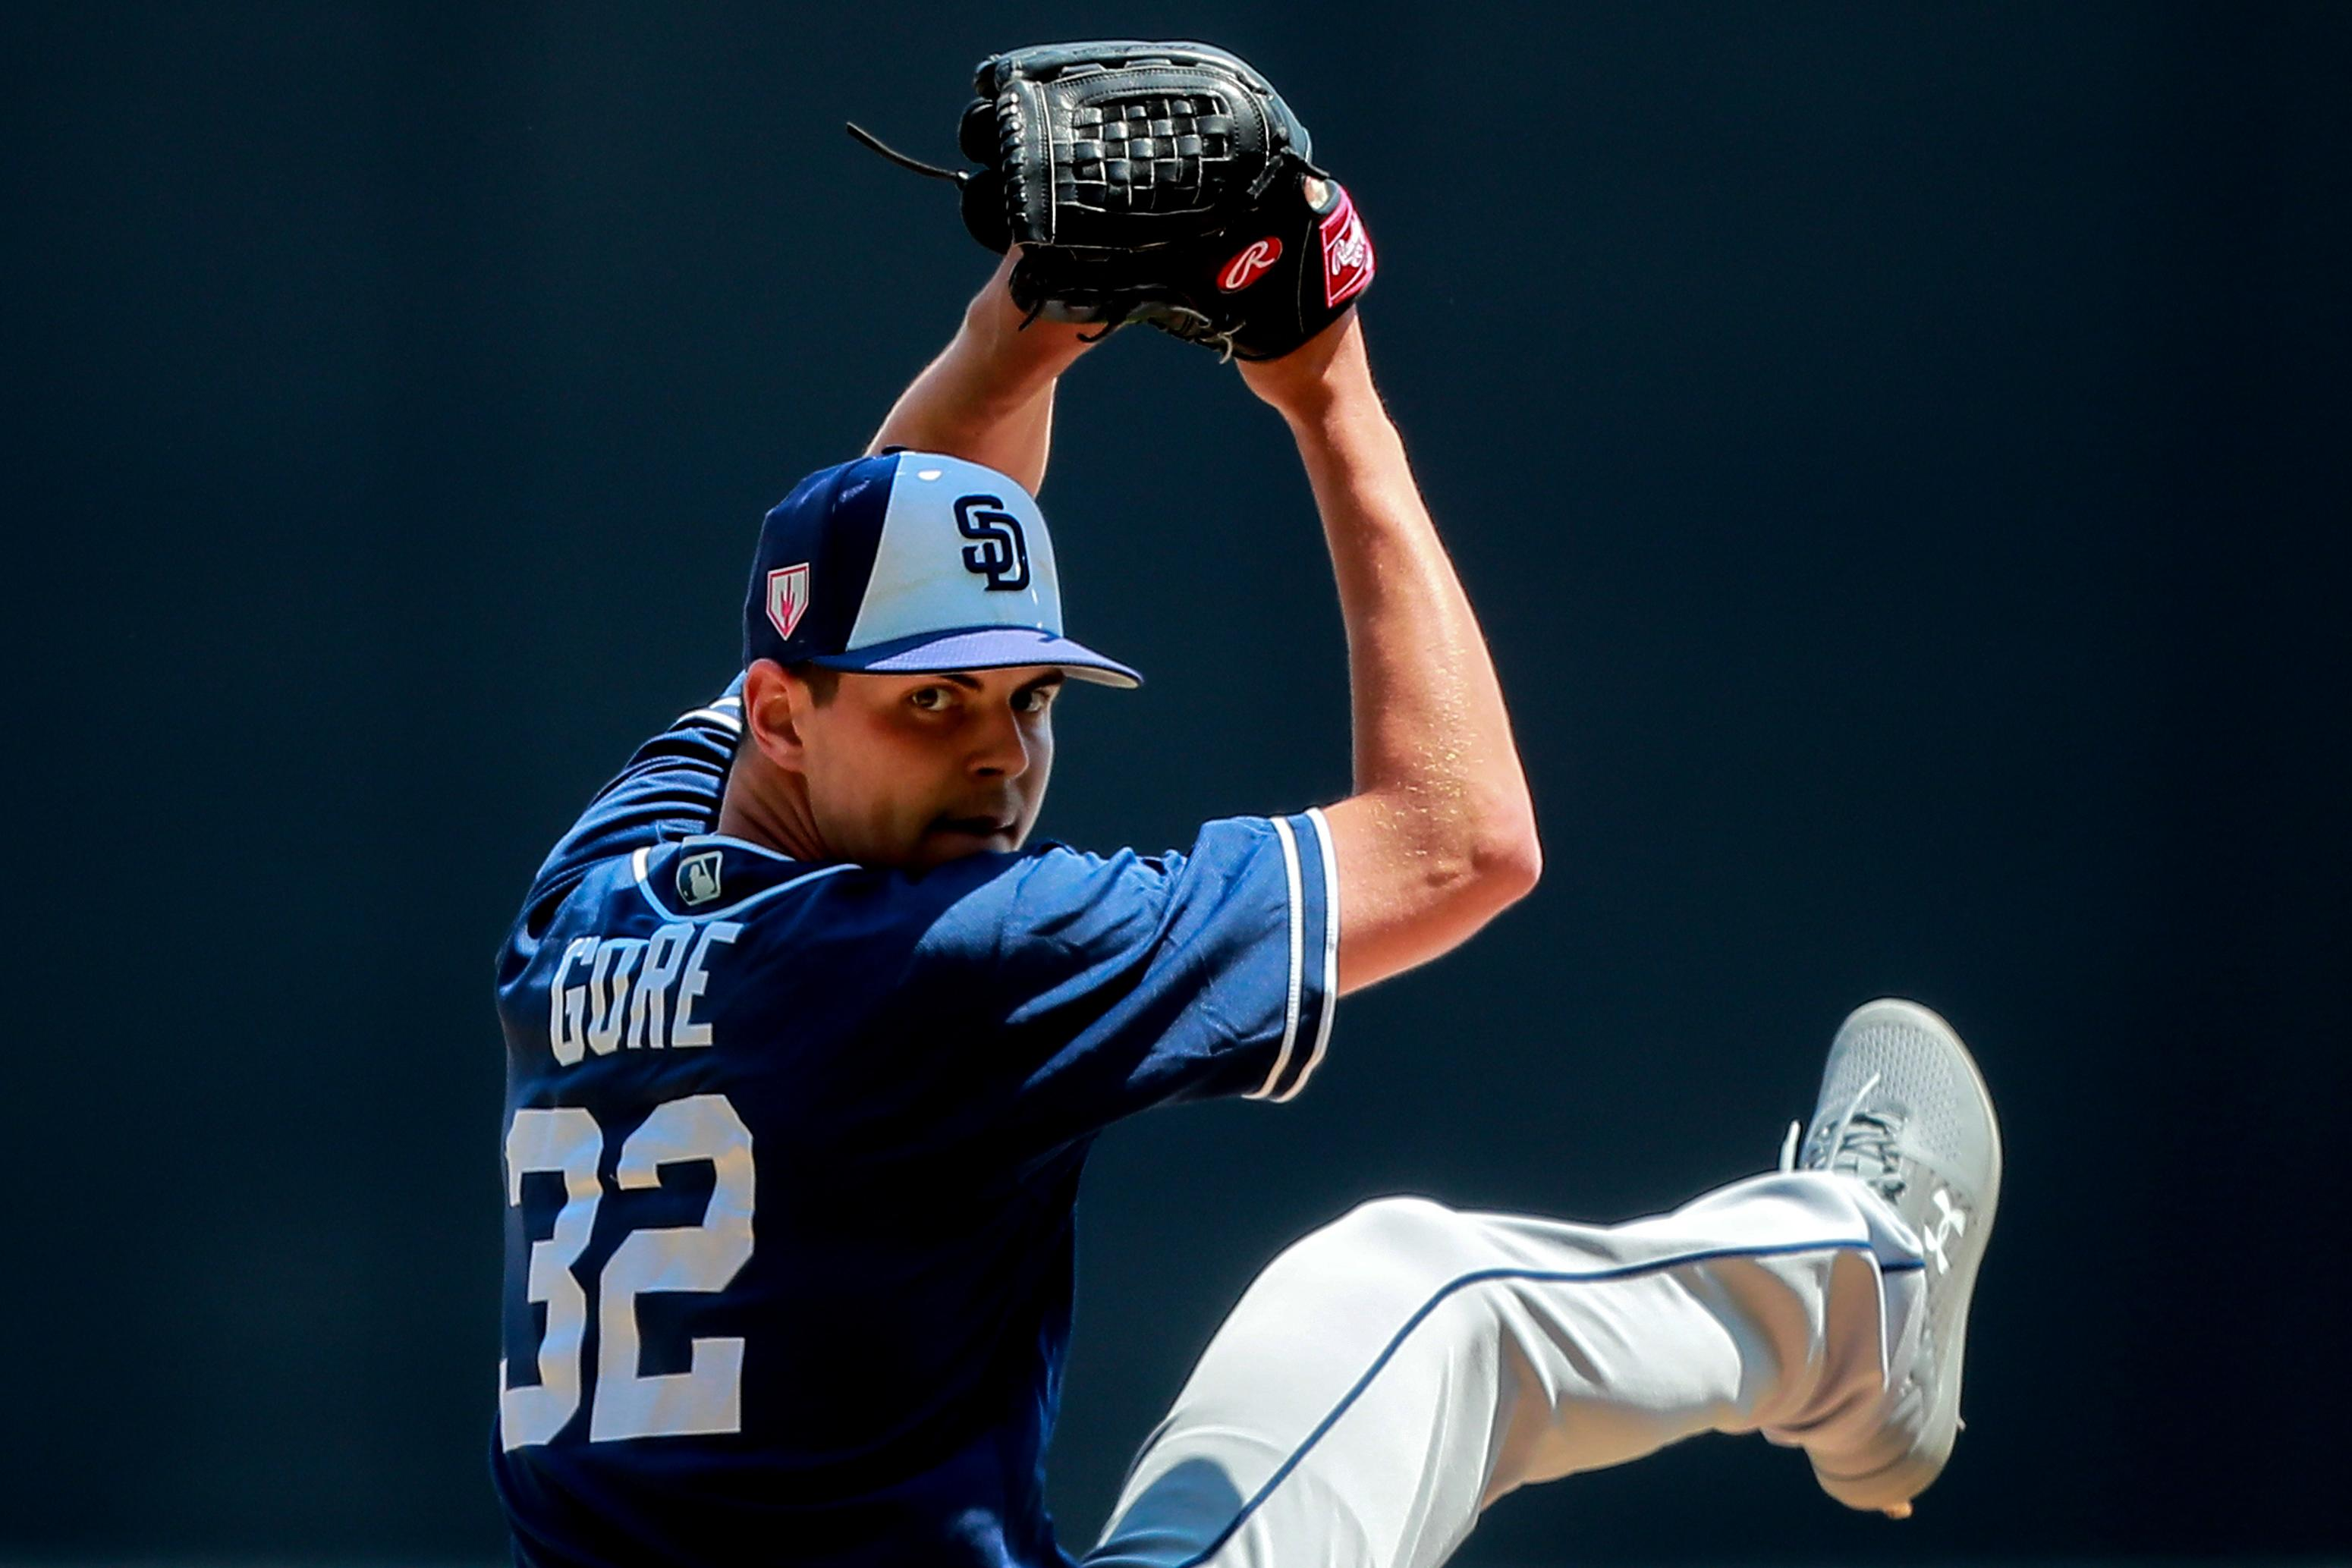 Mackenzie Gore is my prediction for NL rookie of the year